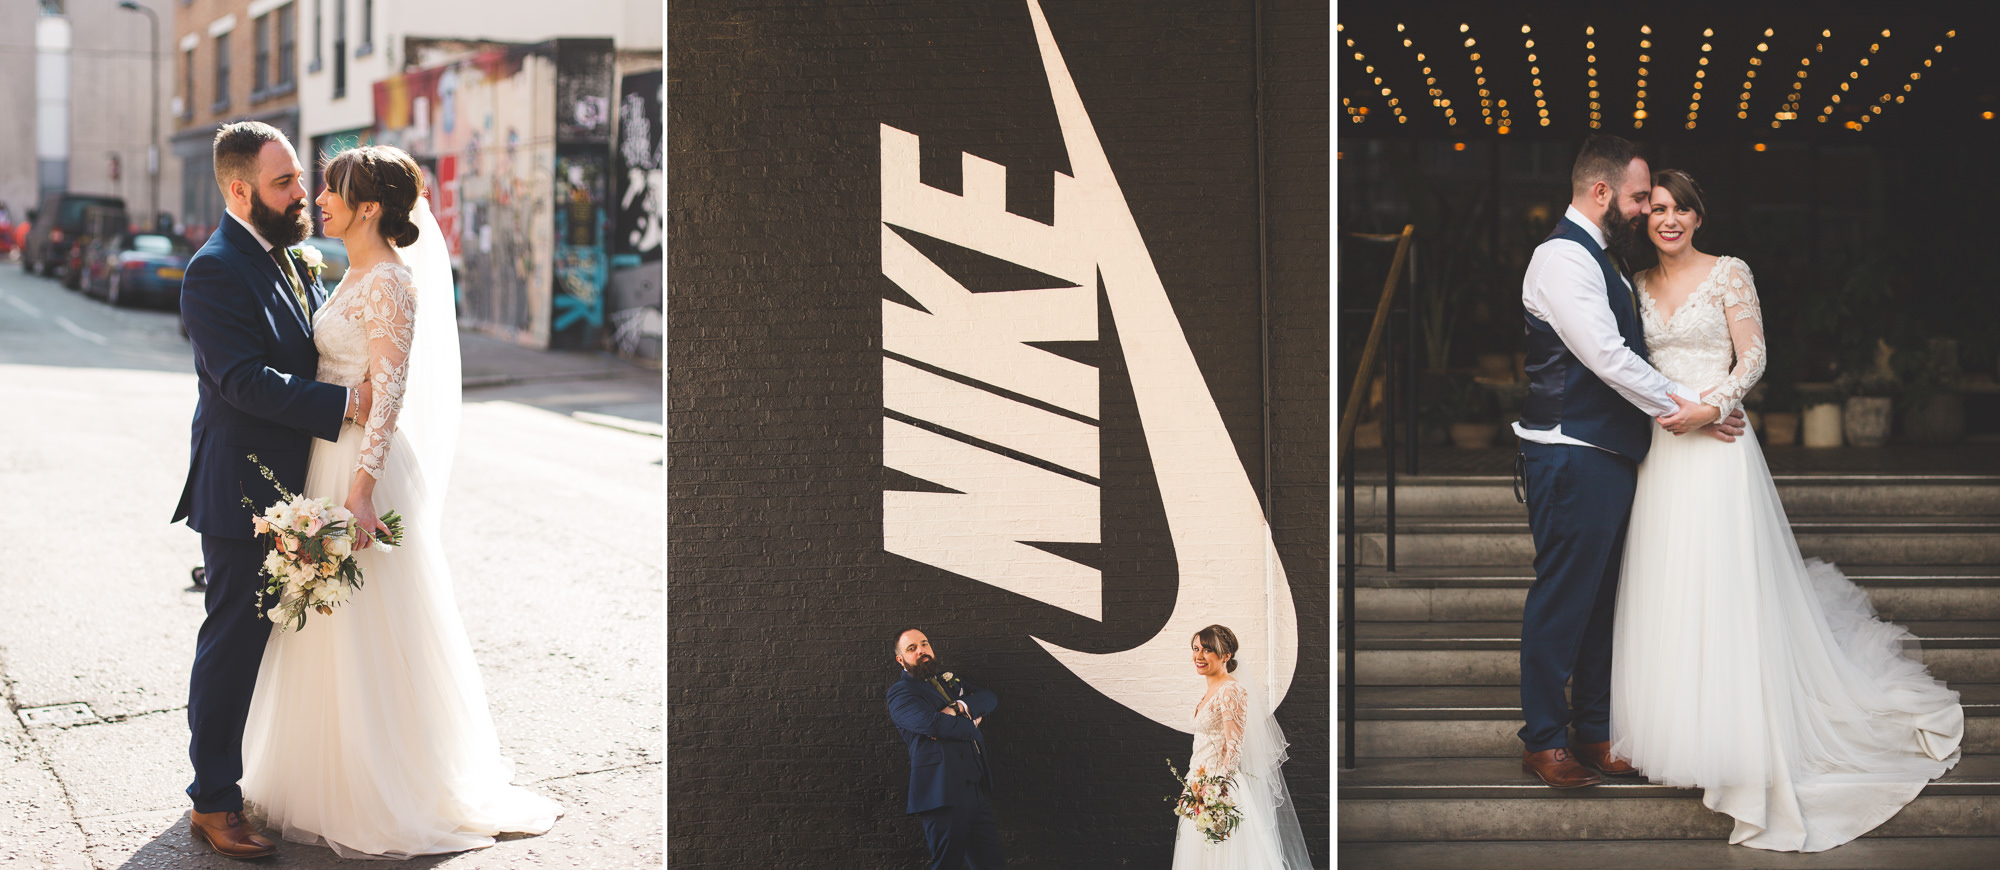 Bride and Groom during wedding at Ace Hotel Shoreditch Wedding captured by Fun Quirky Relaxed Surrey Wedding Photographer - Colourful & Natural wedding photography